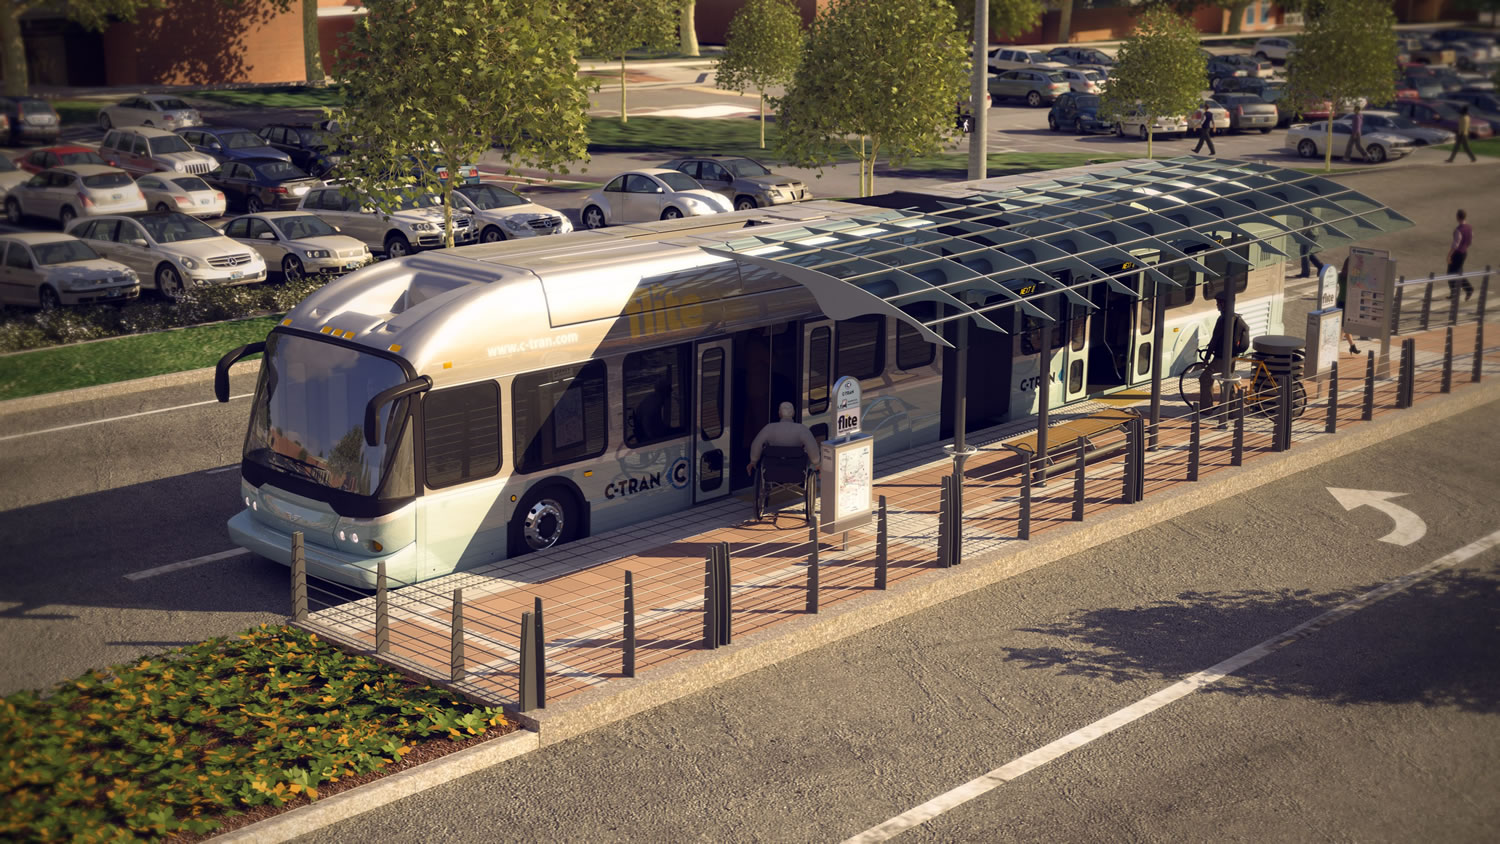 Courtesy of C-Tran C-Tran has proposed building a bus rapid transit line in Vancouver stretching from downtown to the Westfield Vancouver mall along the city's Fourth Plain corridor. The system would also serve Clark College, as shown here in an artist rendering. If built, the line could open as soon as 2016. But some elements, including boarding station designs, remain undecided.